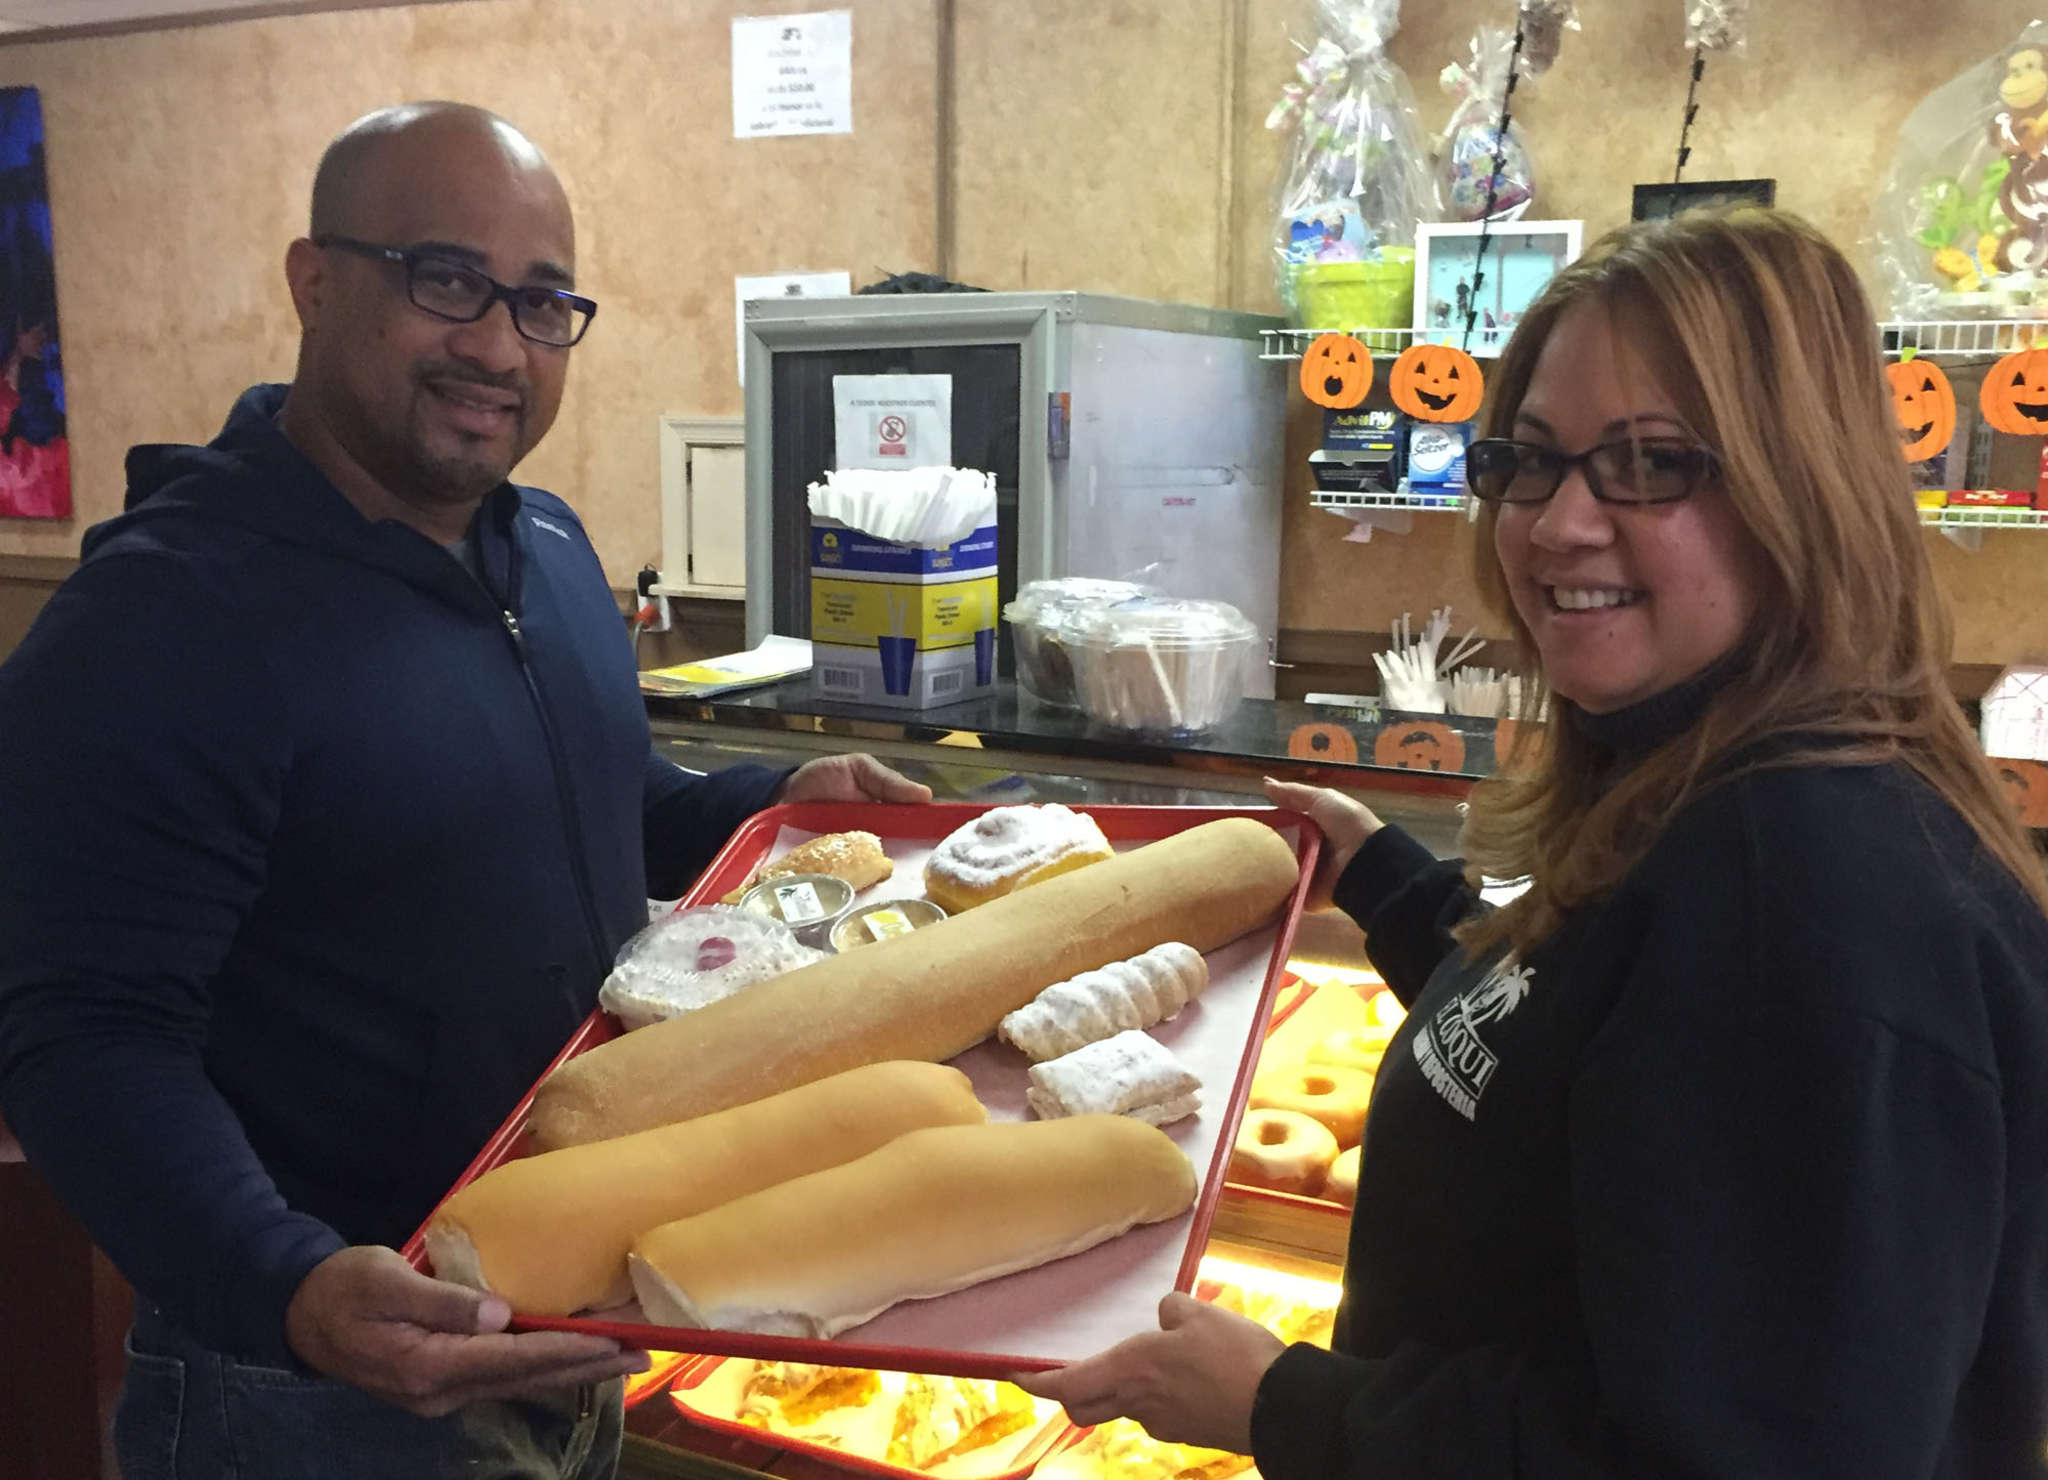 MICHAEL HINKELMAN / FOR THE DAILY NEWS El Coqui co-owners Cesar Guzman and Yazmin Auli say their bakery´s Puerto Rican pastries attract customers from throughout the East Coast.